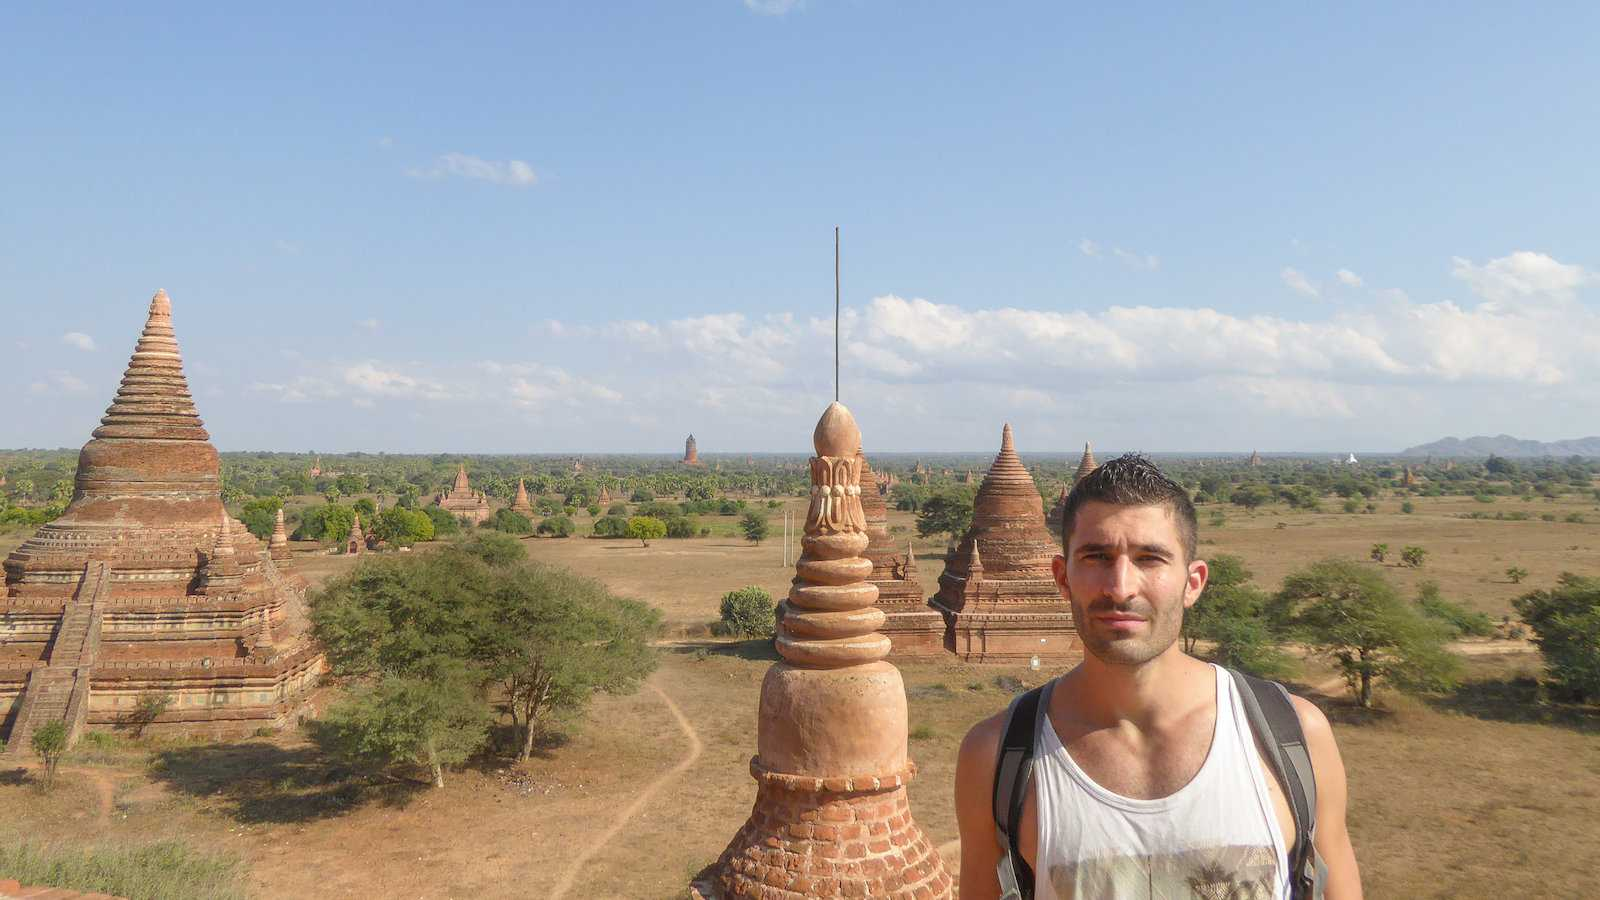 The best pagodas for sunset and sunrise in Bagan are the less popular ones